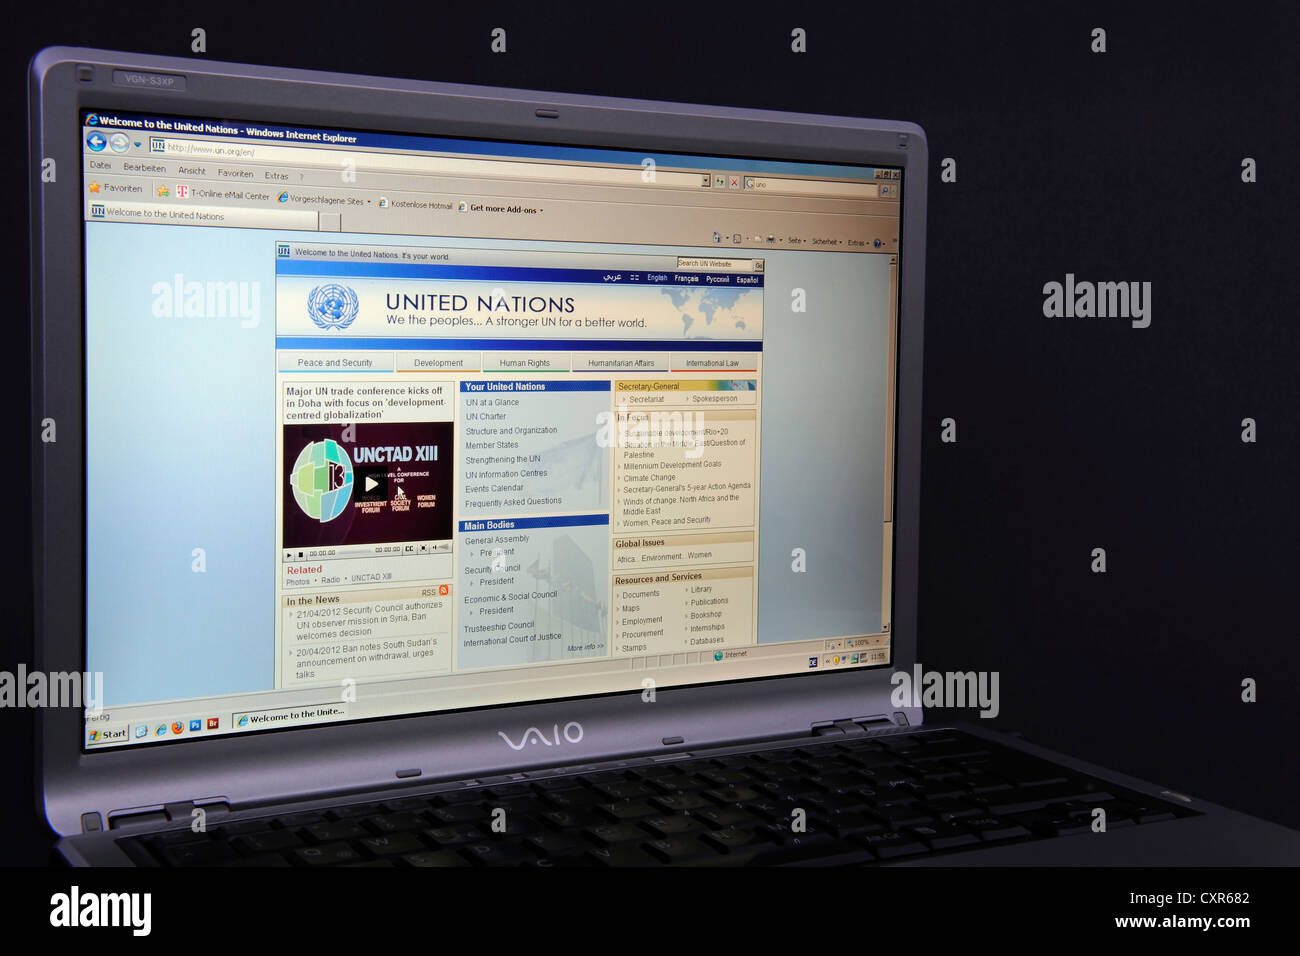 Website, webpage of the United Nations on the screen of a Sony Vaio laptop - Stock Image